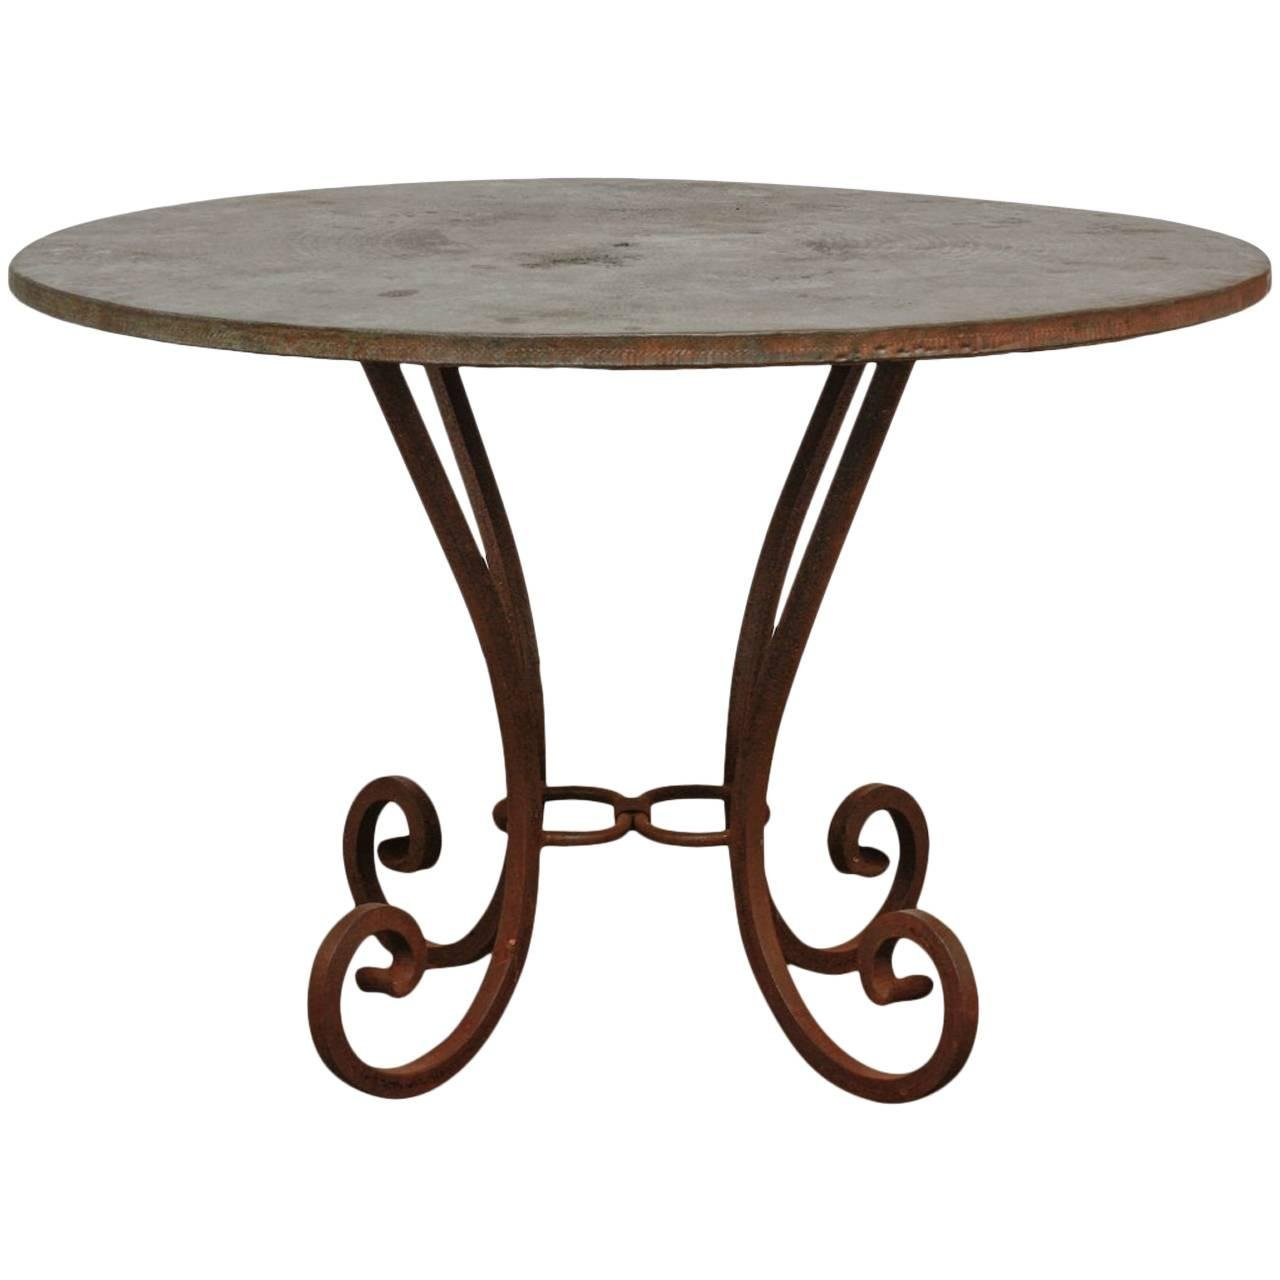 Wrought Iron Round Table.Wrought Iron And Copper Round Dining Table Erin Lane Estate